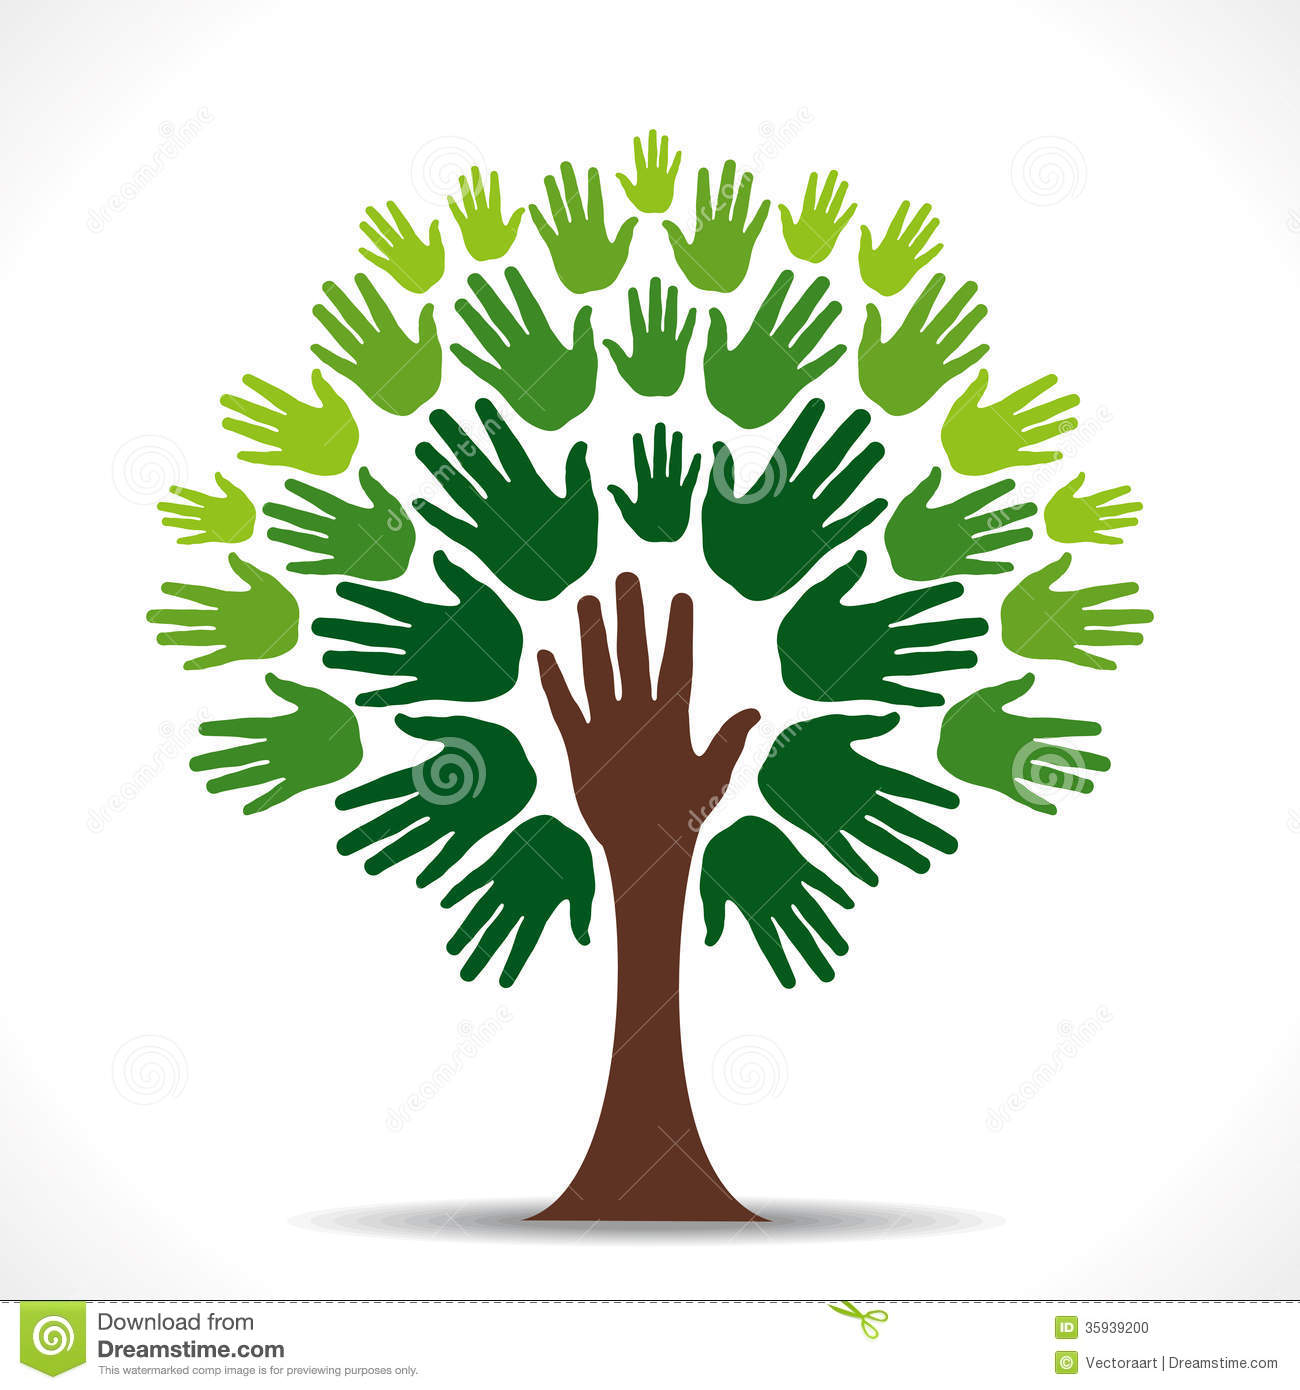 Symbolism Trees Green Hand Tree Stock Photo Image 35939200